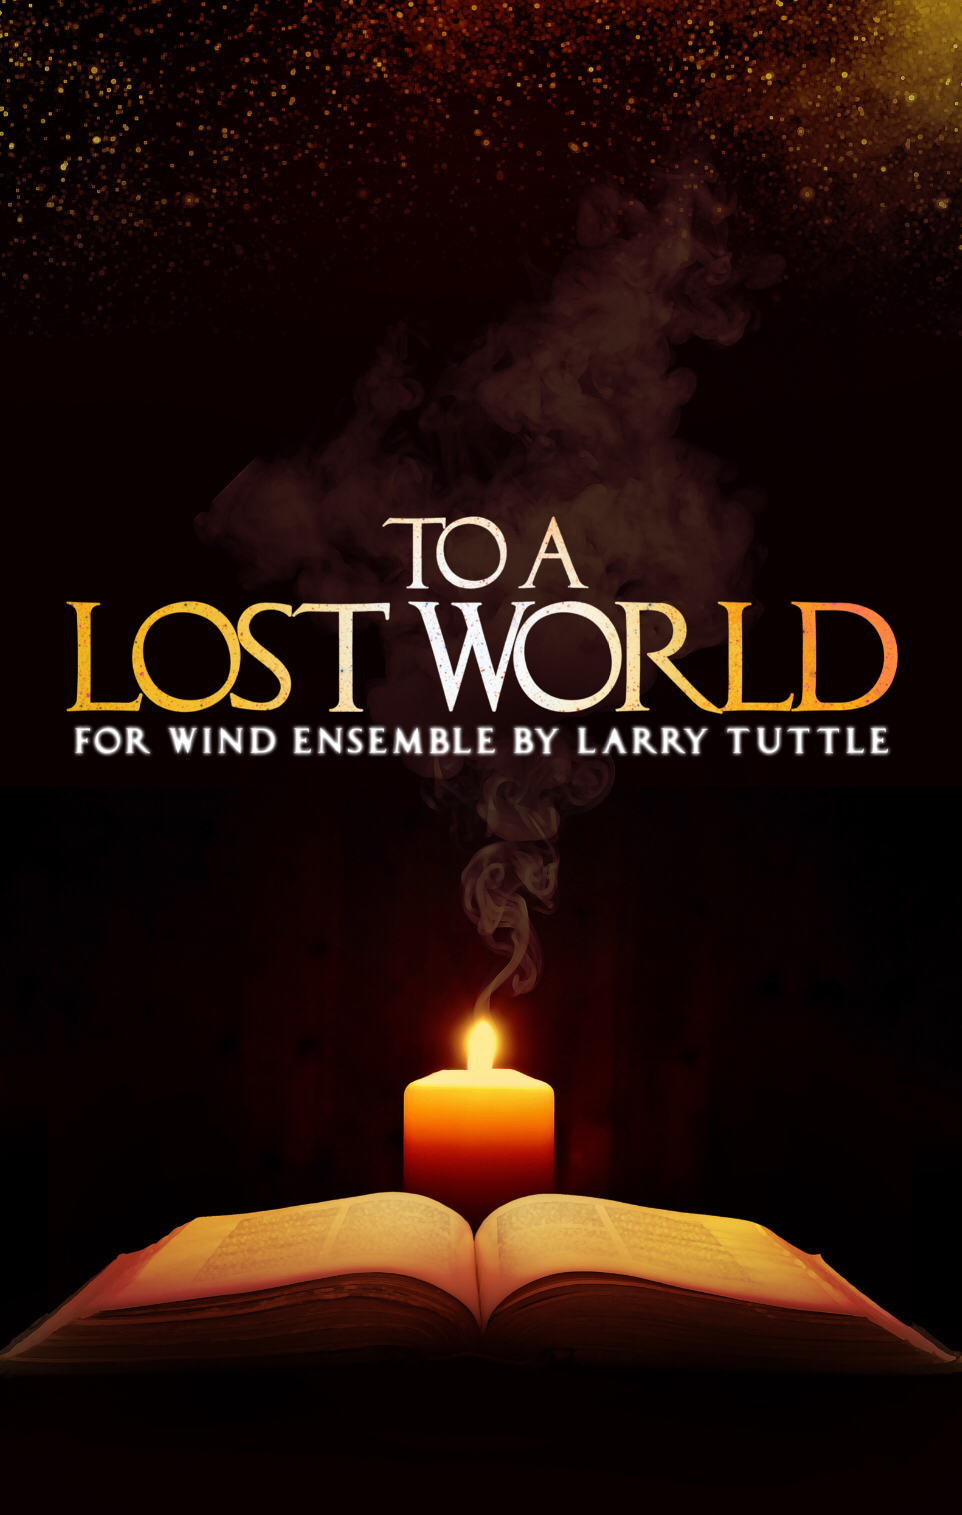 To A Lost World by Larry Tuttle